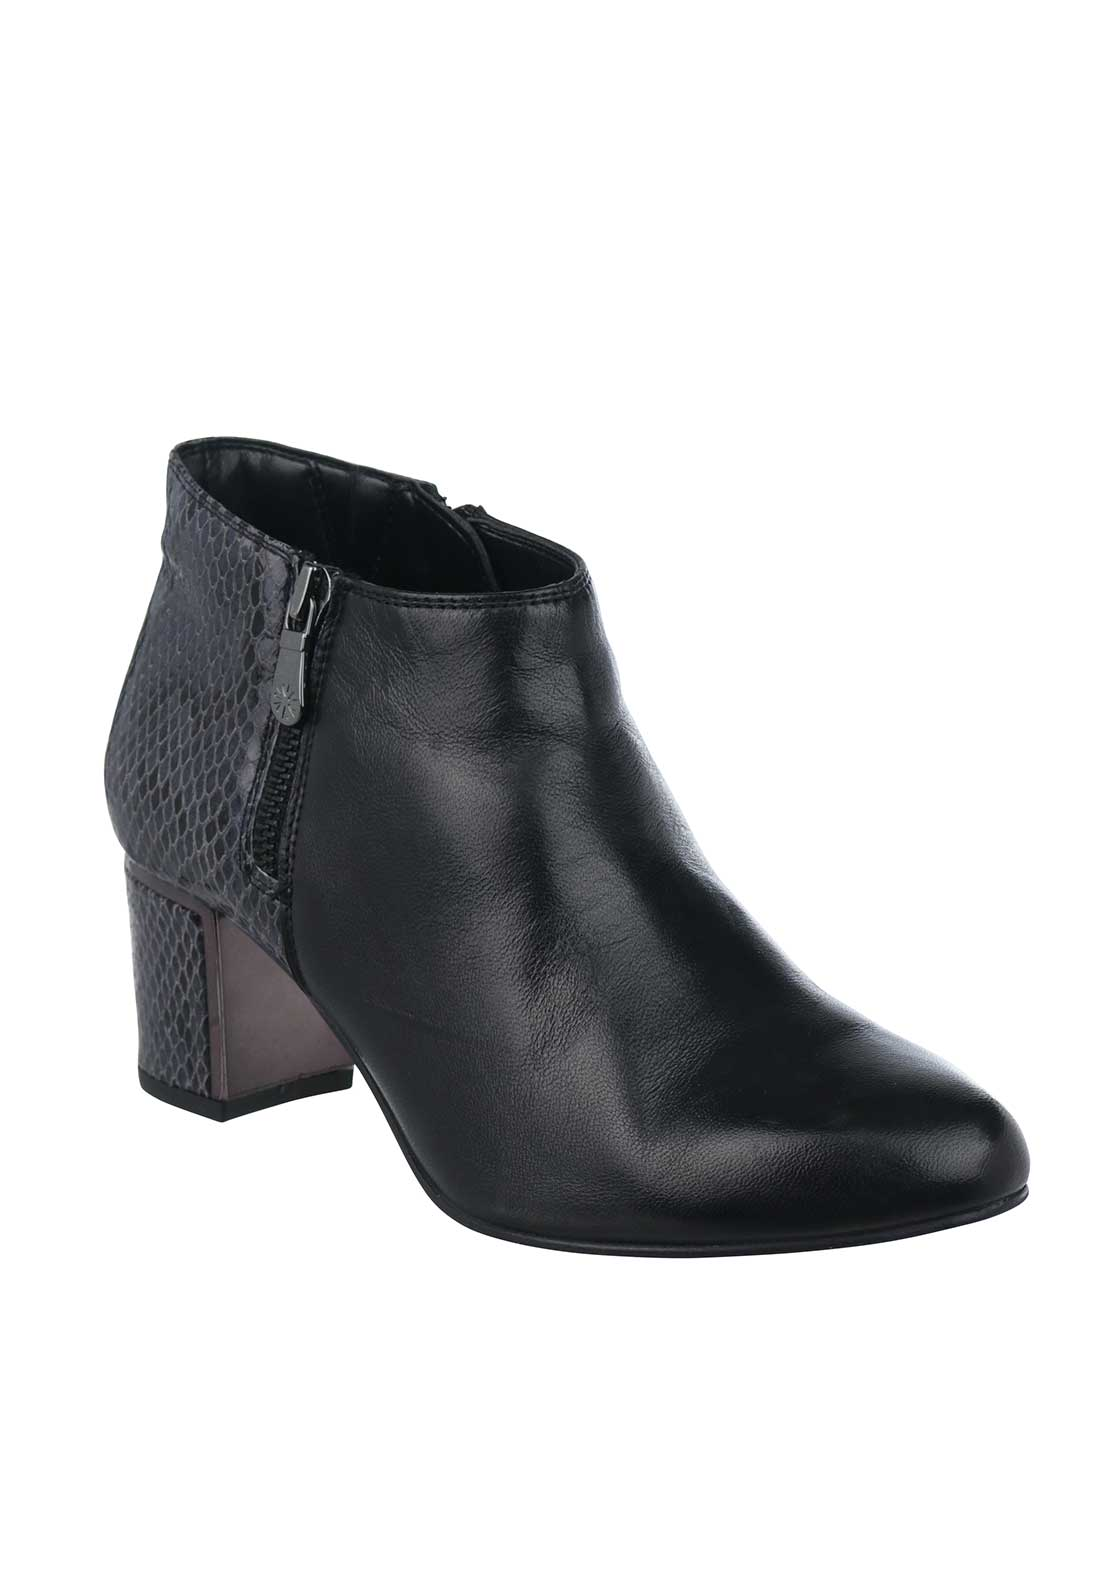 Van Dal Arial Leather Heeled Ankle Boots, Black